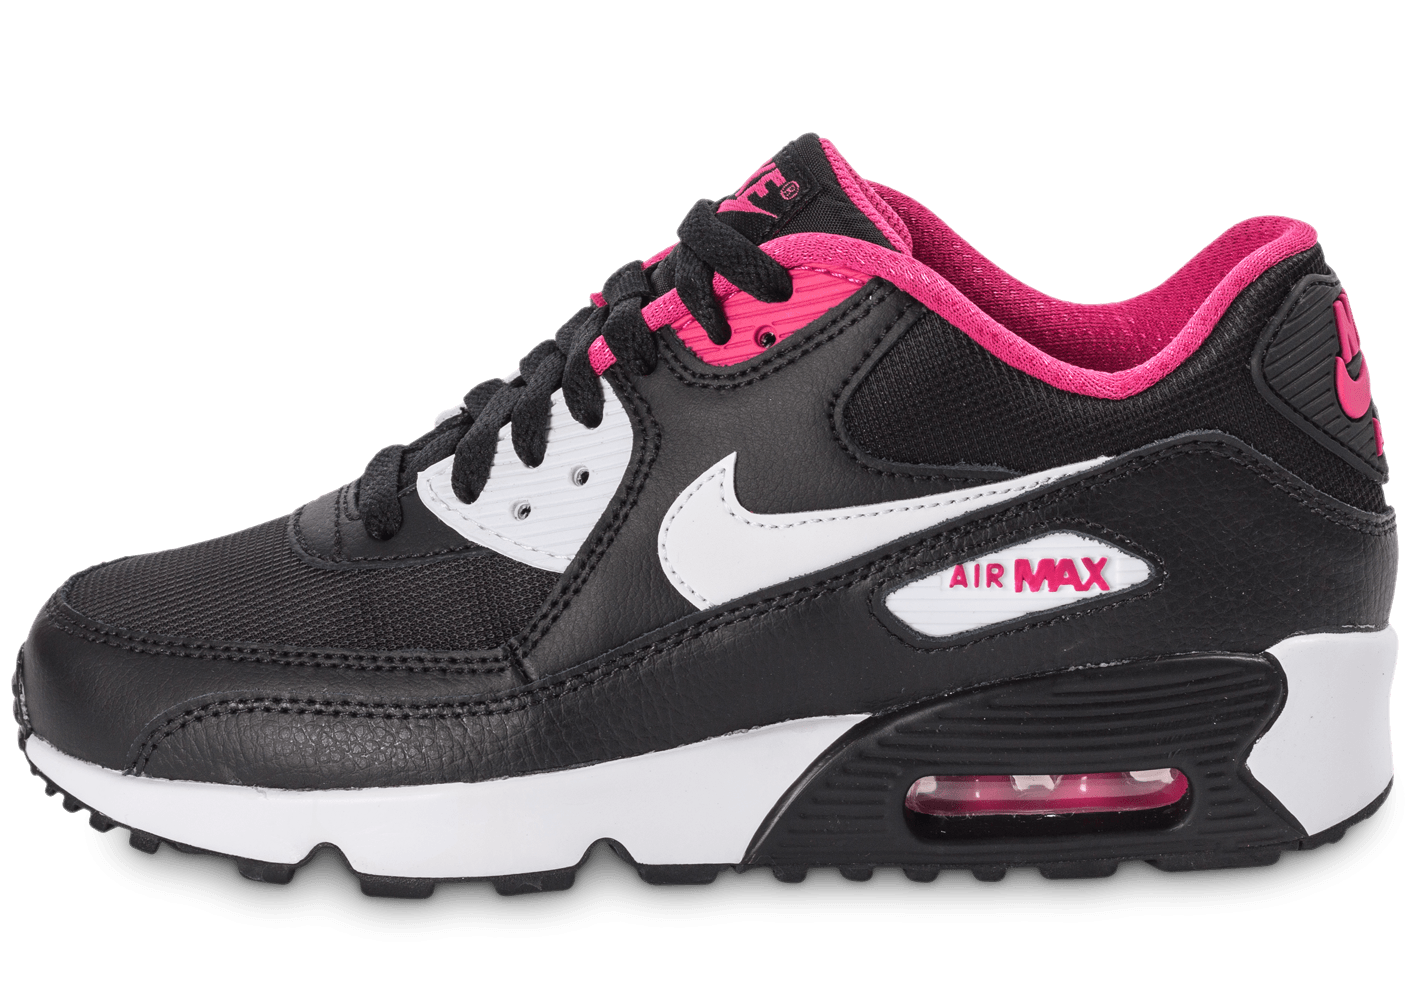 save off 38ae5 d4f70 Nike Air Max 90 Mesh Junior noir et rose - Chaussures Enfant - Chausport